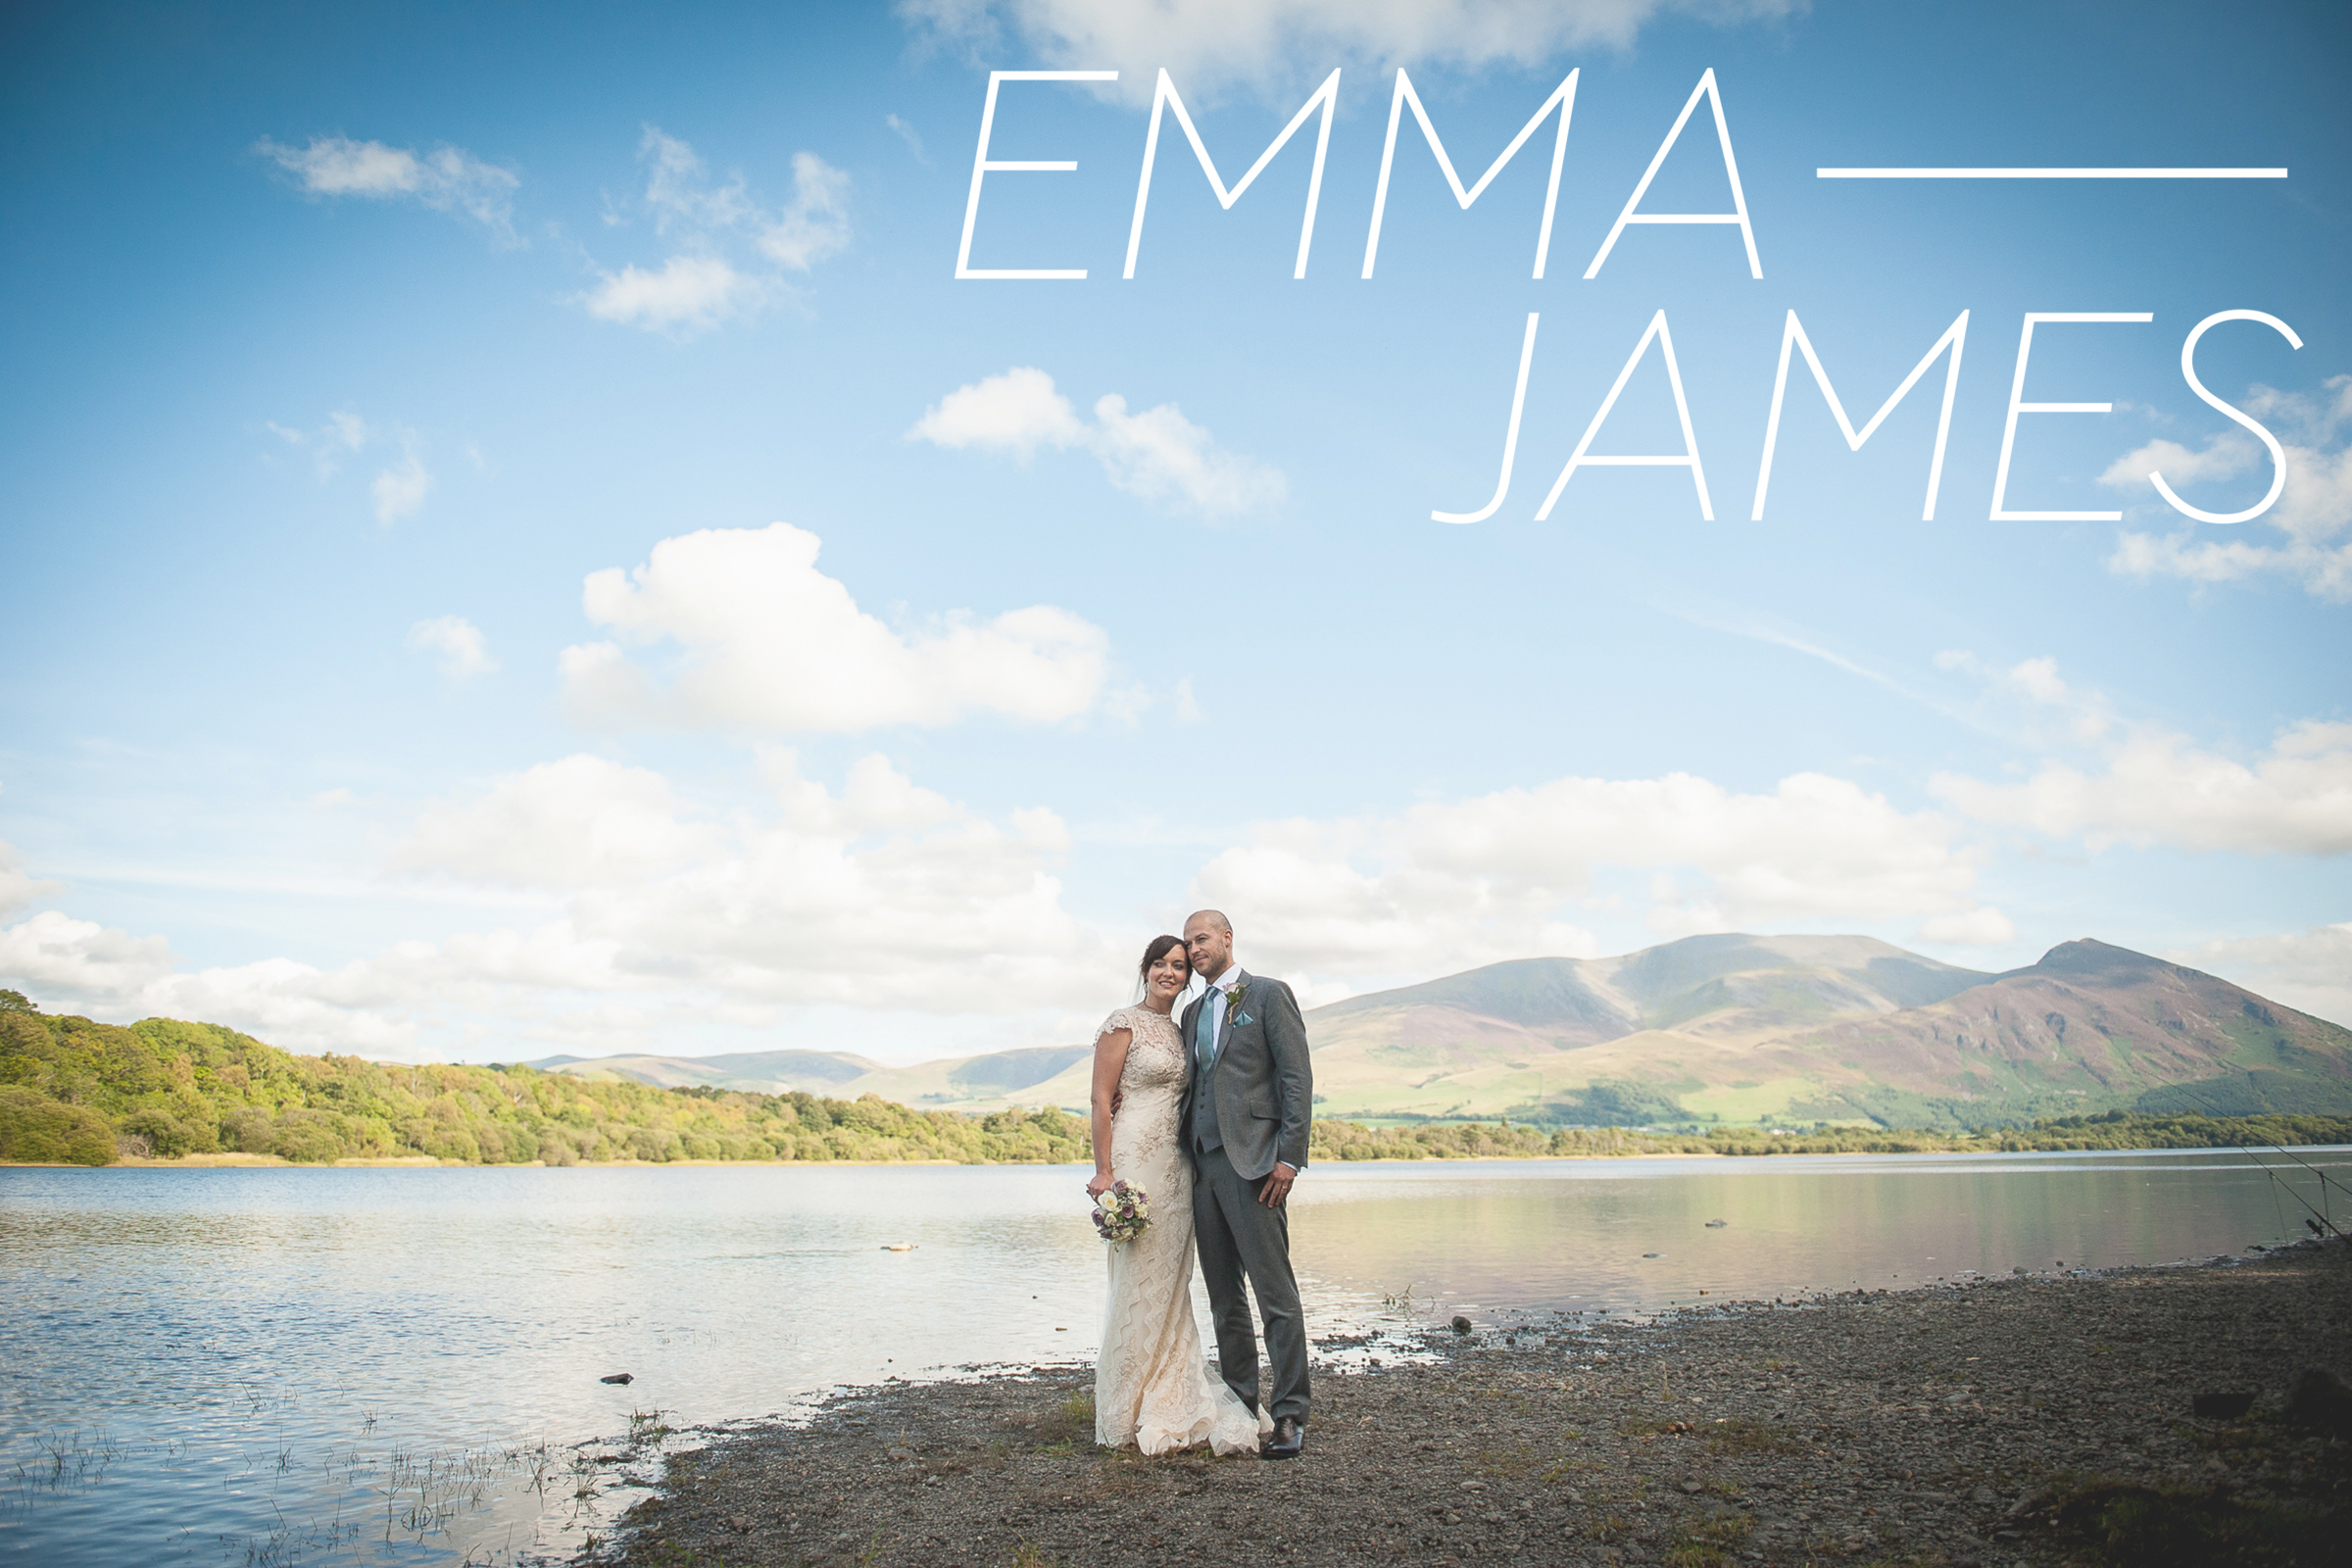 Emma and James